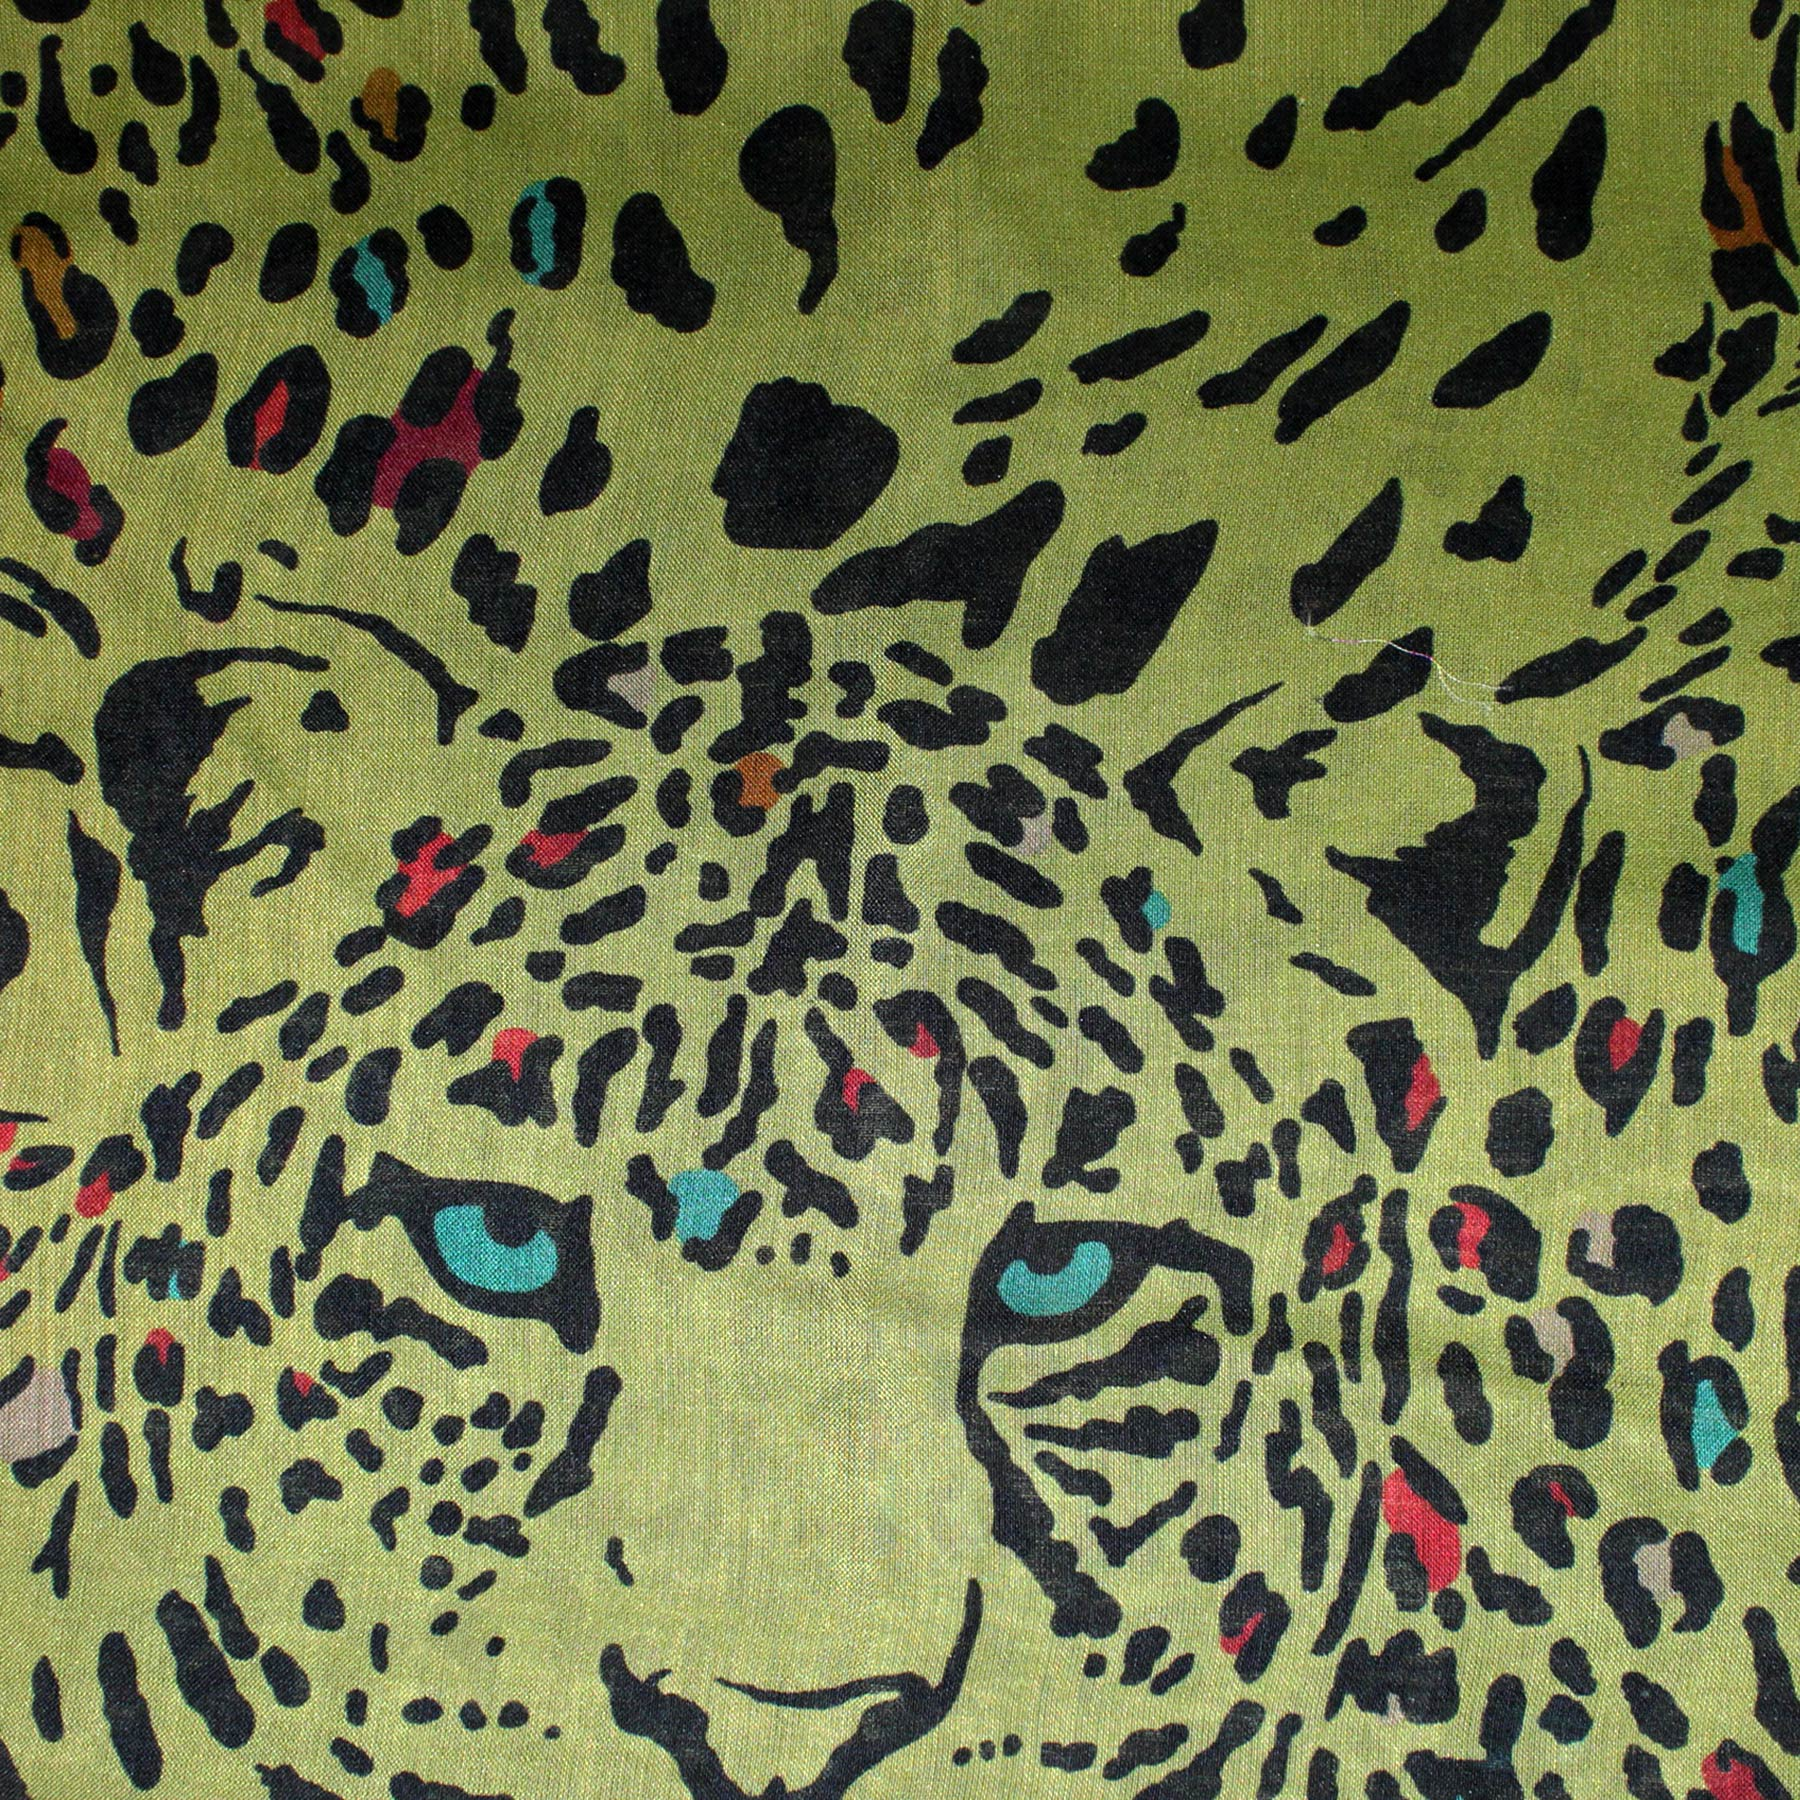 Etro Scarf Olive Panther Print - Extra Large Cashmere Silk Wrap SALE